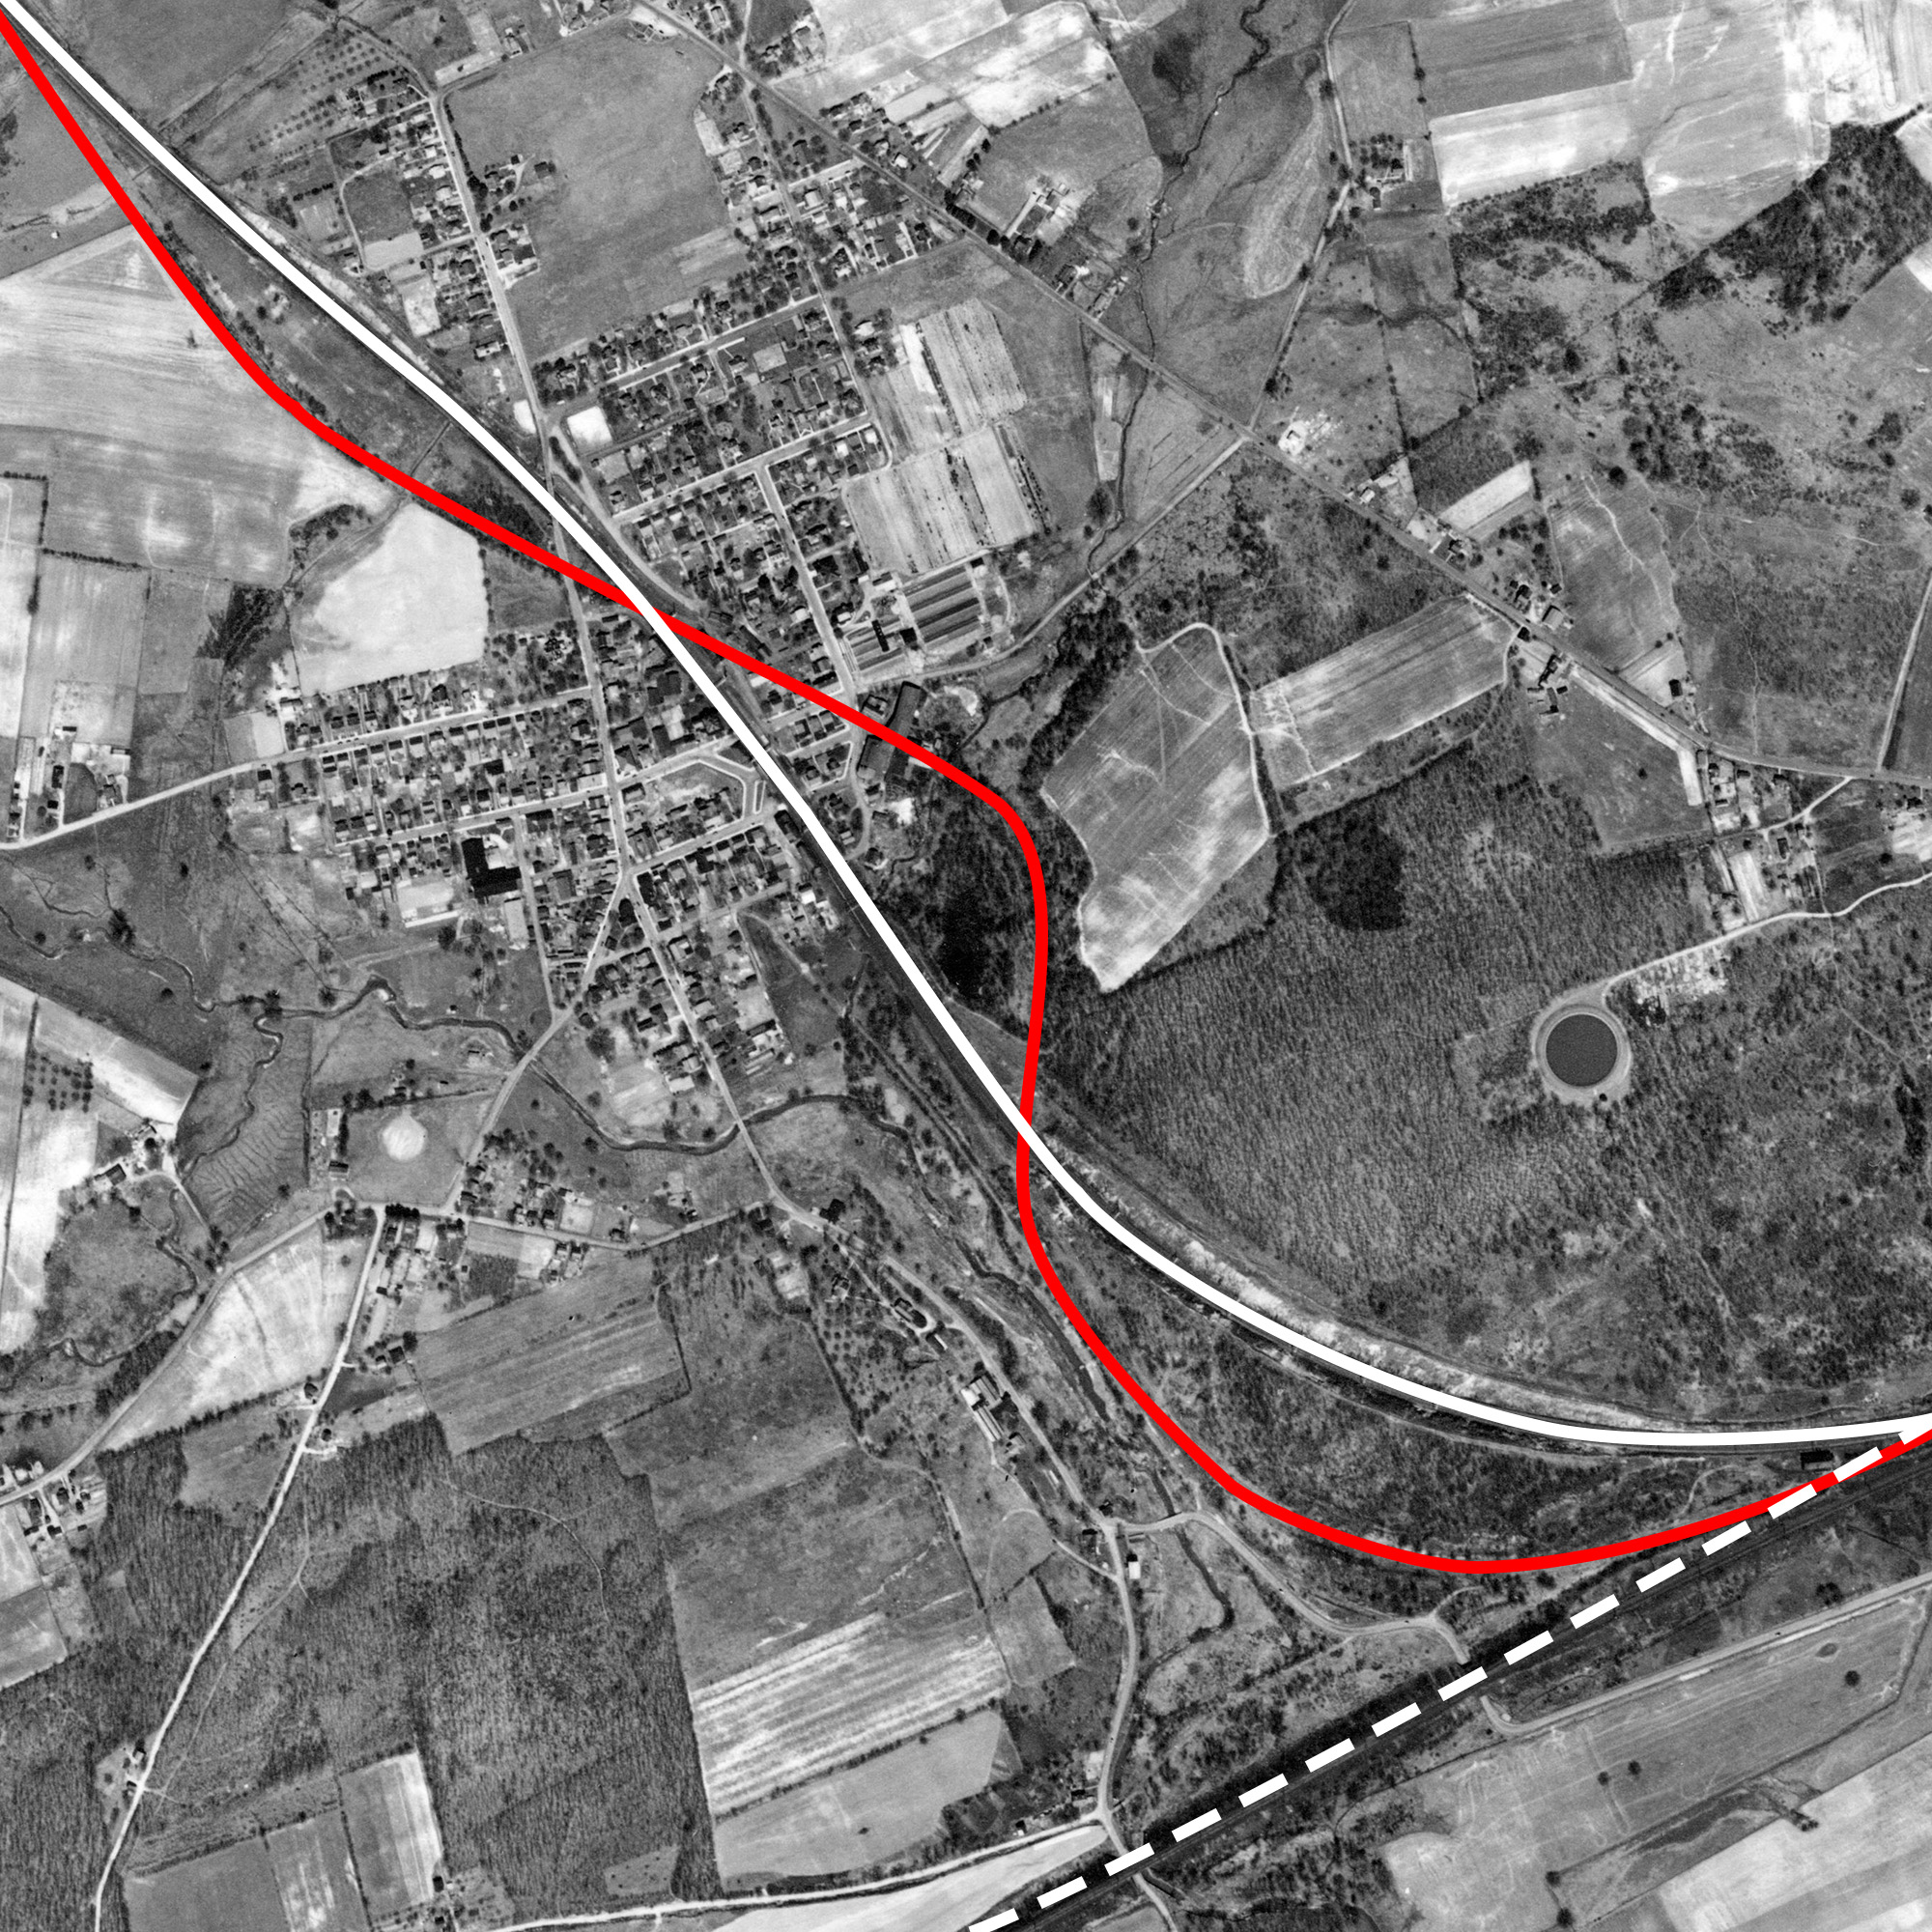 Annotated map of the Borough of Christiana illustrating the original P&C alignment (red) and the relocated mainline (white), part of the PRR's line improvements completed in 1895. Note the Atglen & Susquehanna Branch in the bottom left, which would not be completed until 1906, joins the right of way to the east of here.